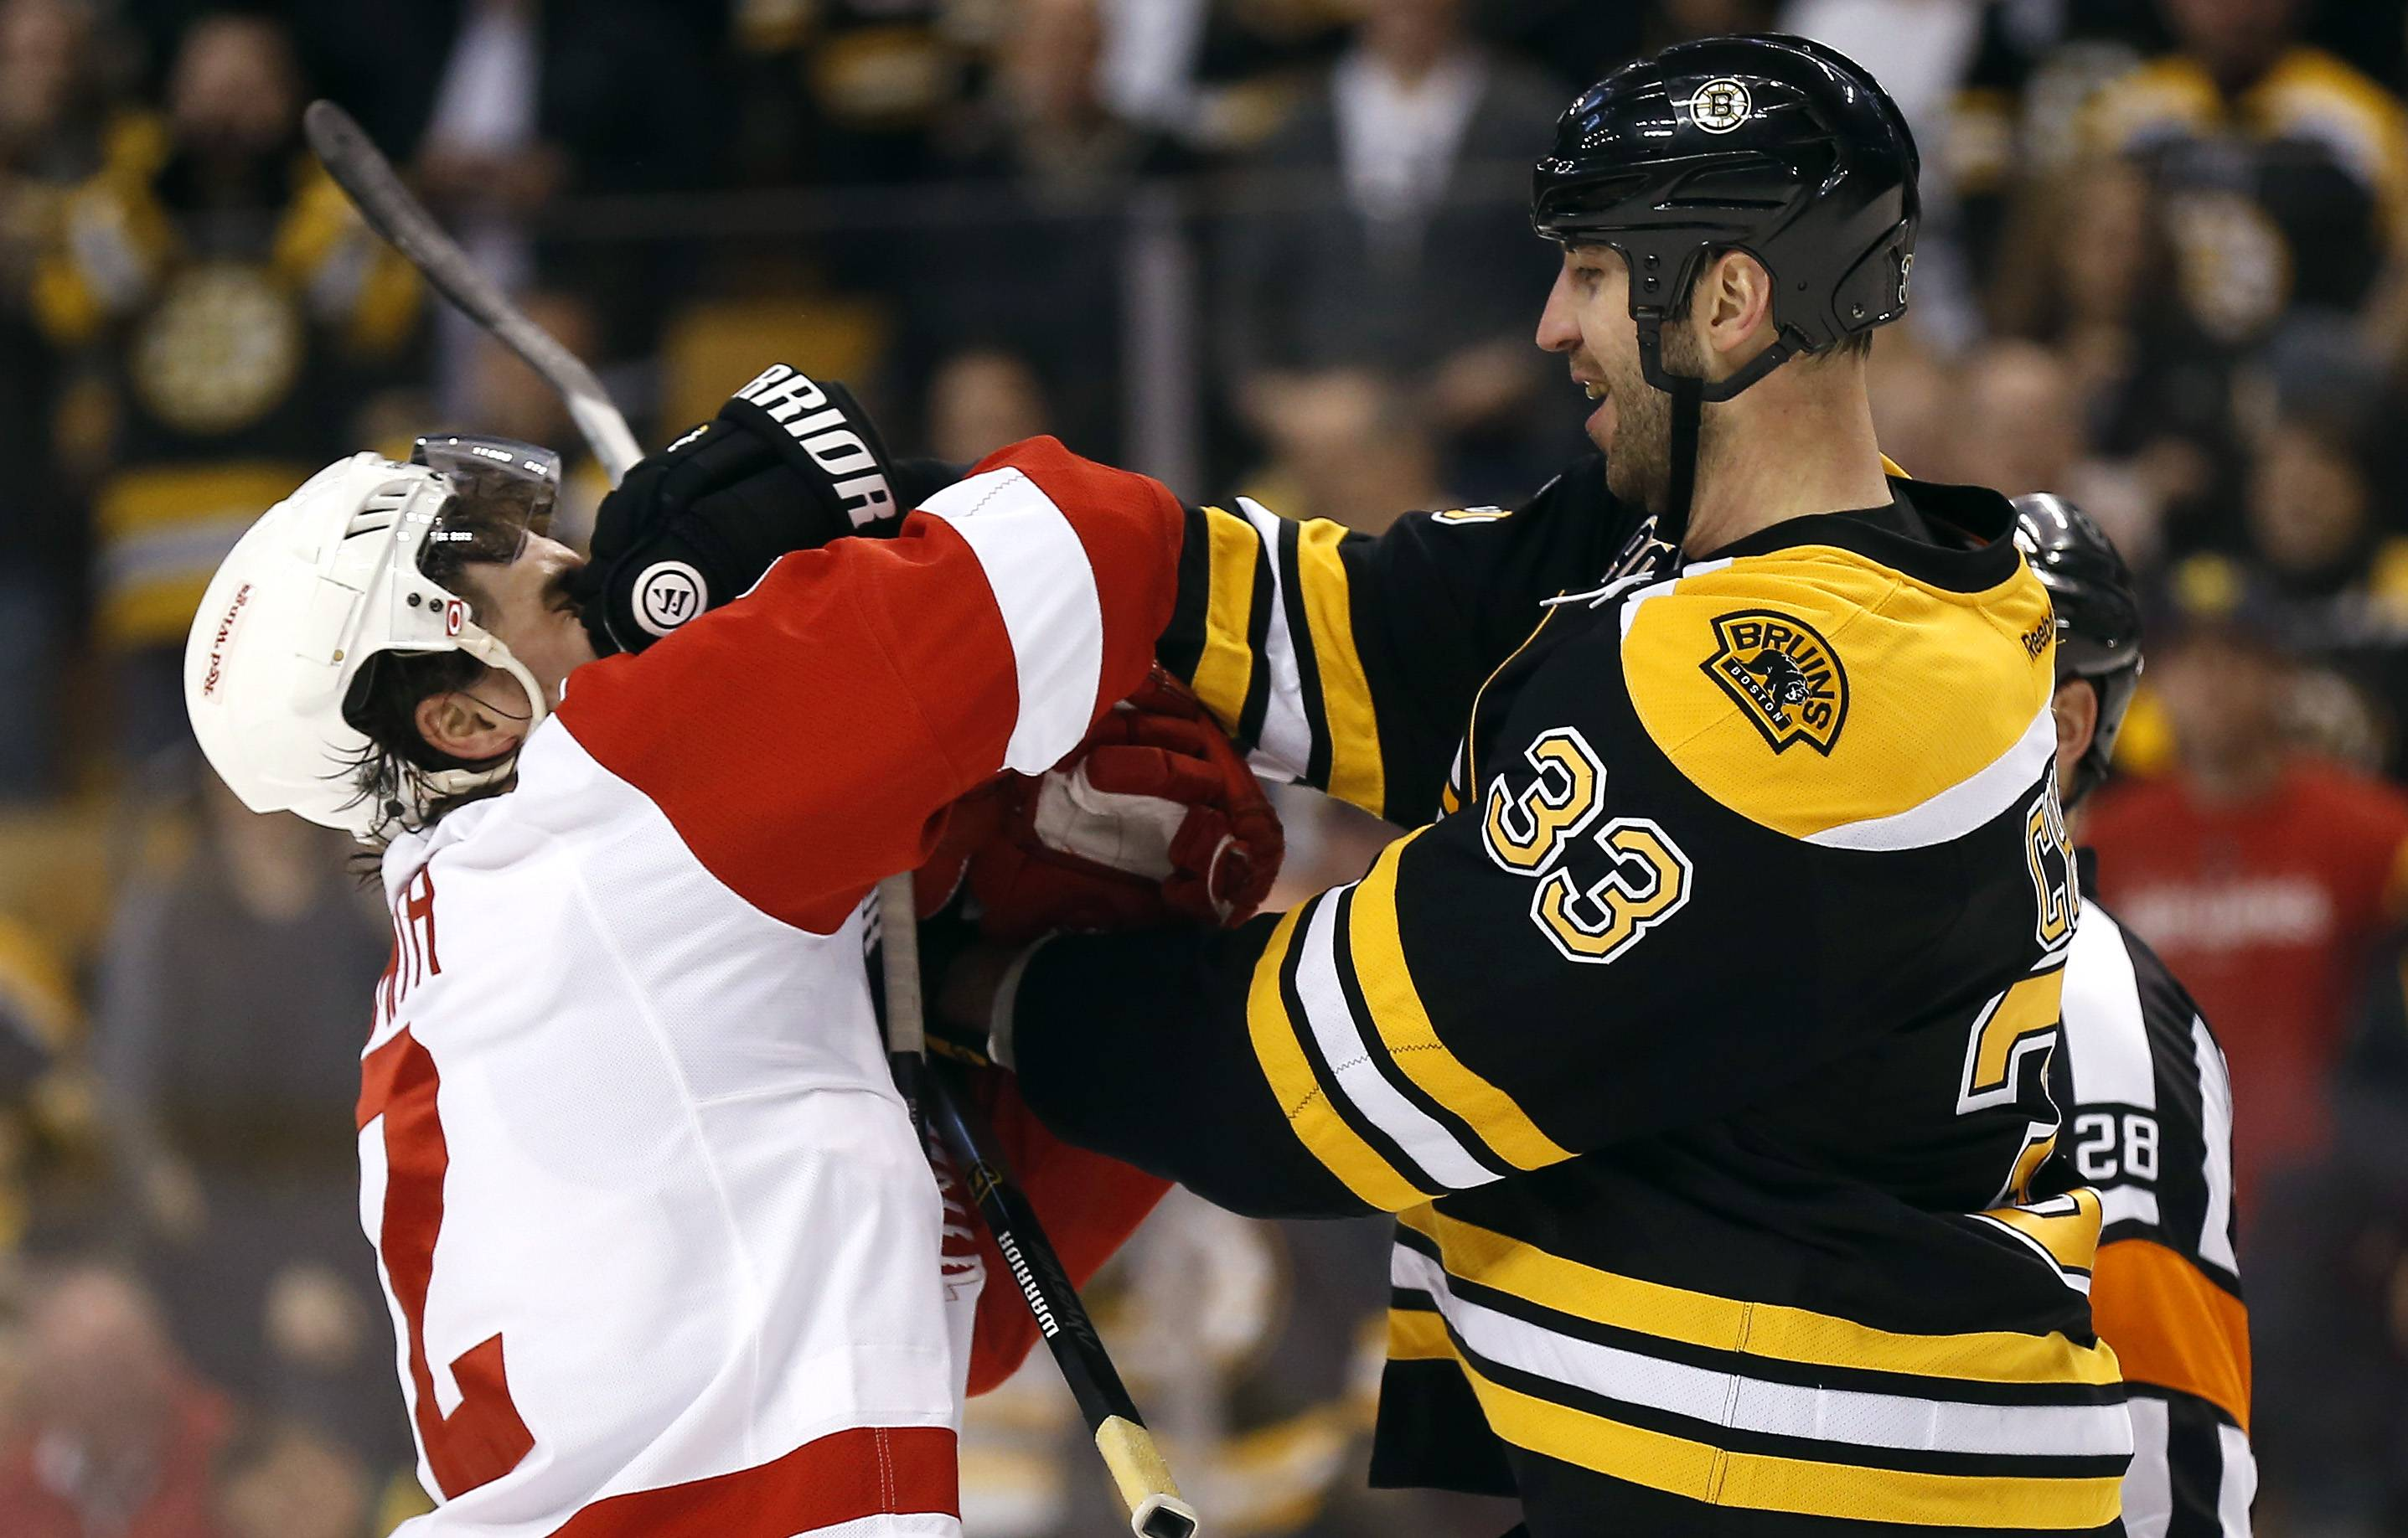 Boston Bruins' Zdeno Chara (33) mixes it up with Detroit Red Wings' Brendan Smith during the first period of Game 2 of a first-round NHL hockey playoff series in Boston, Sunday, April 20, 2014.